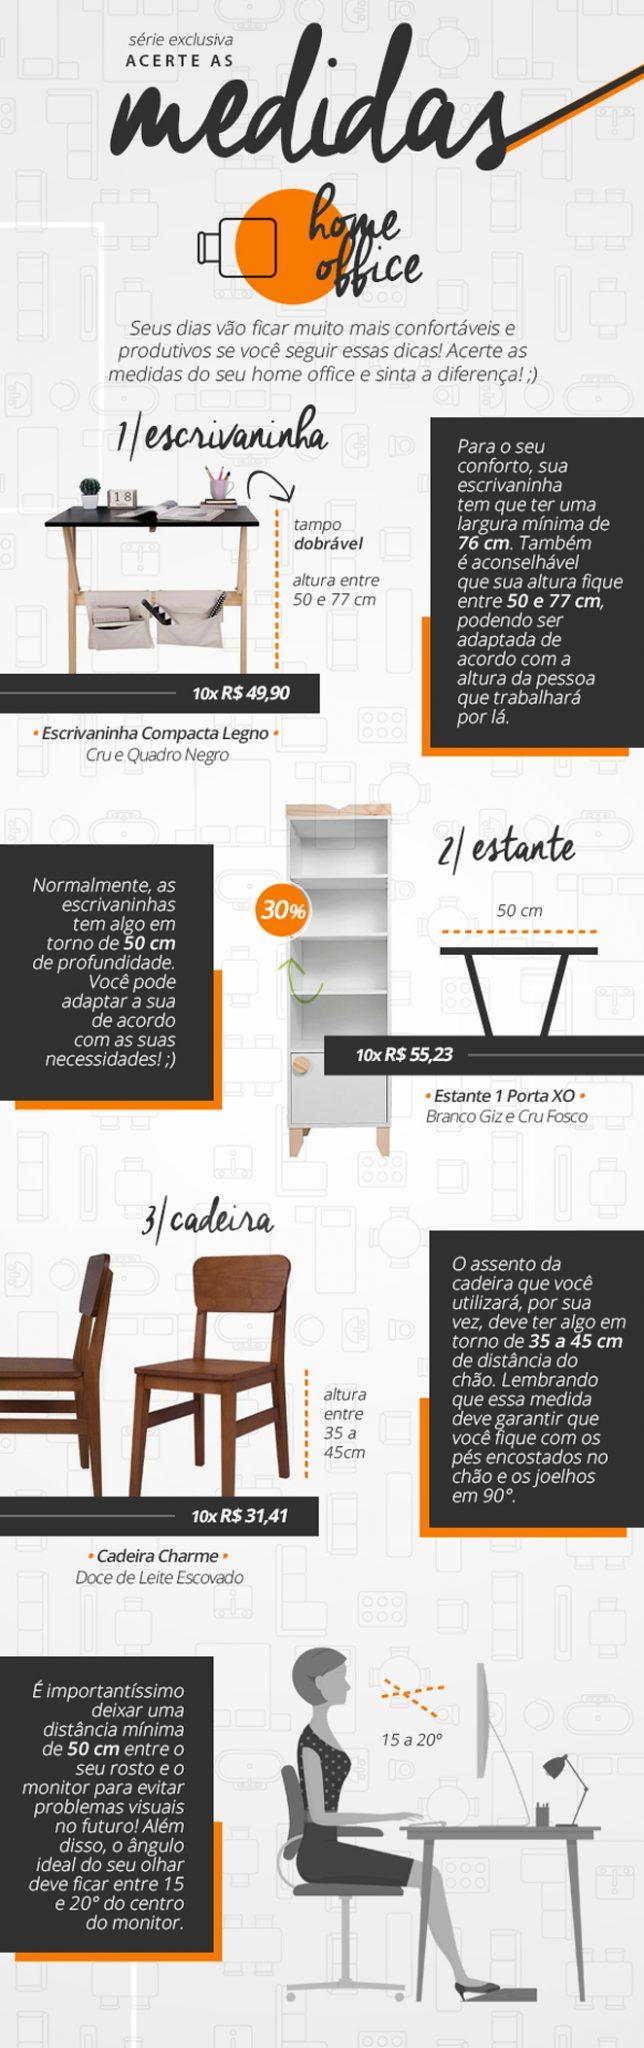 serie acerte as medidas home office